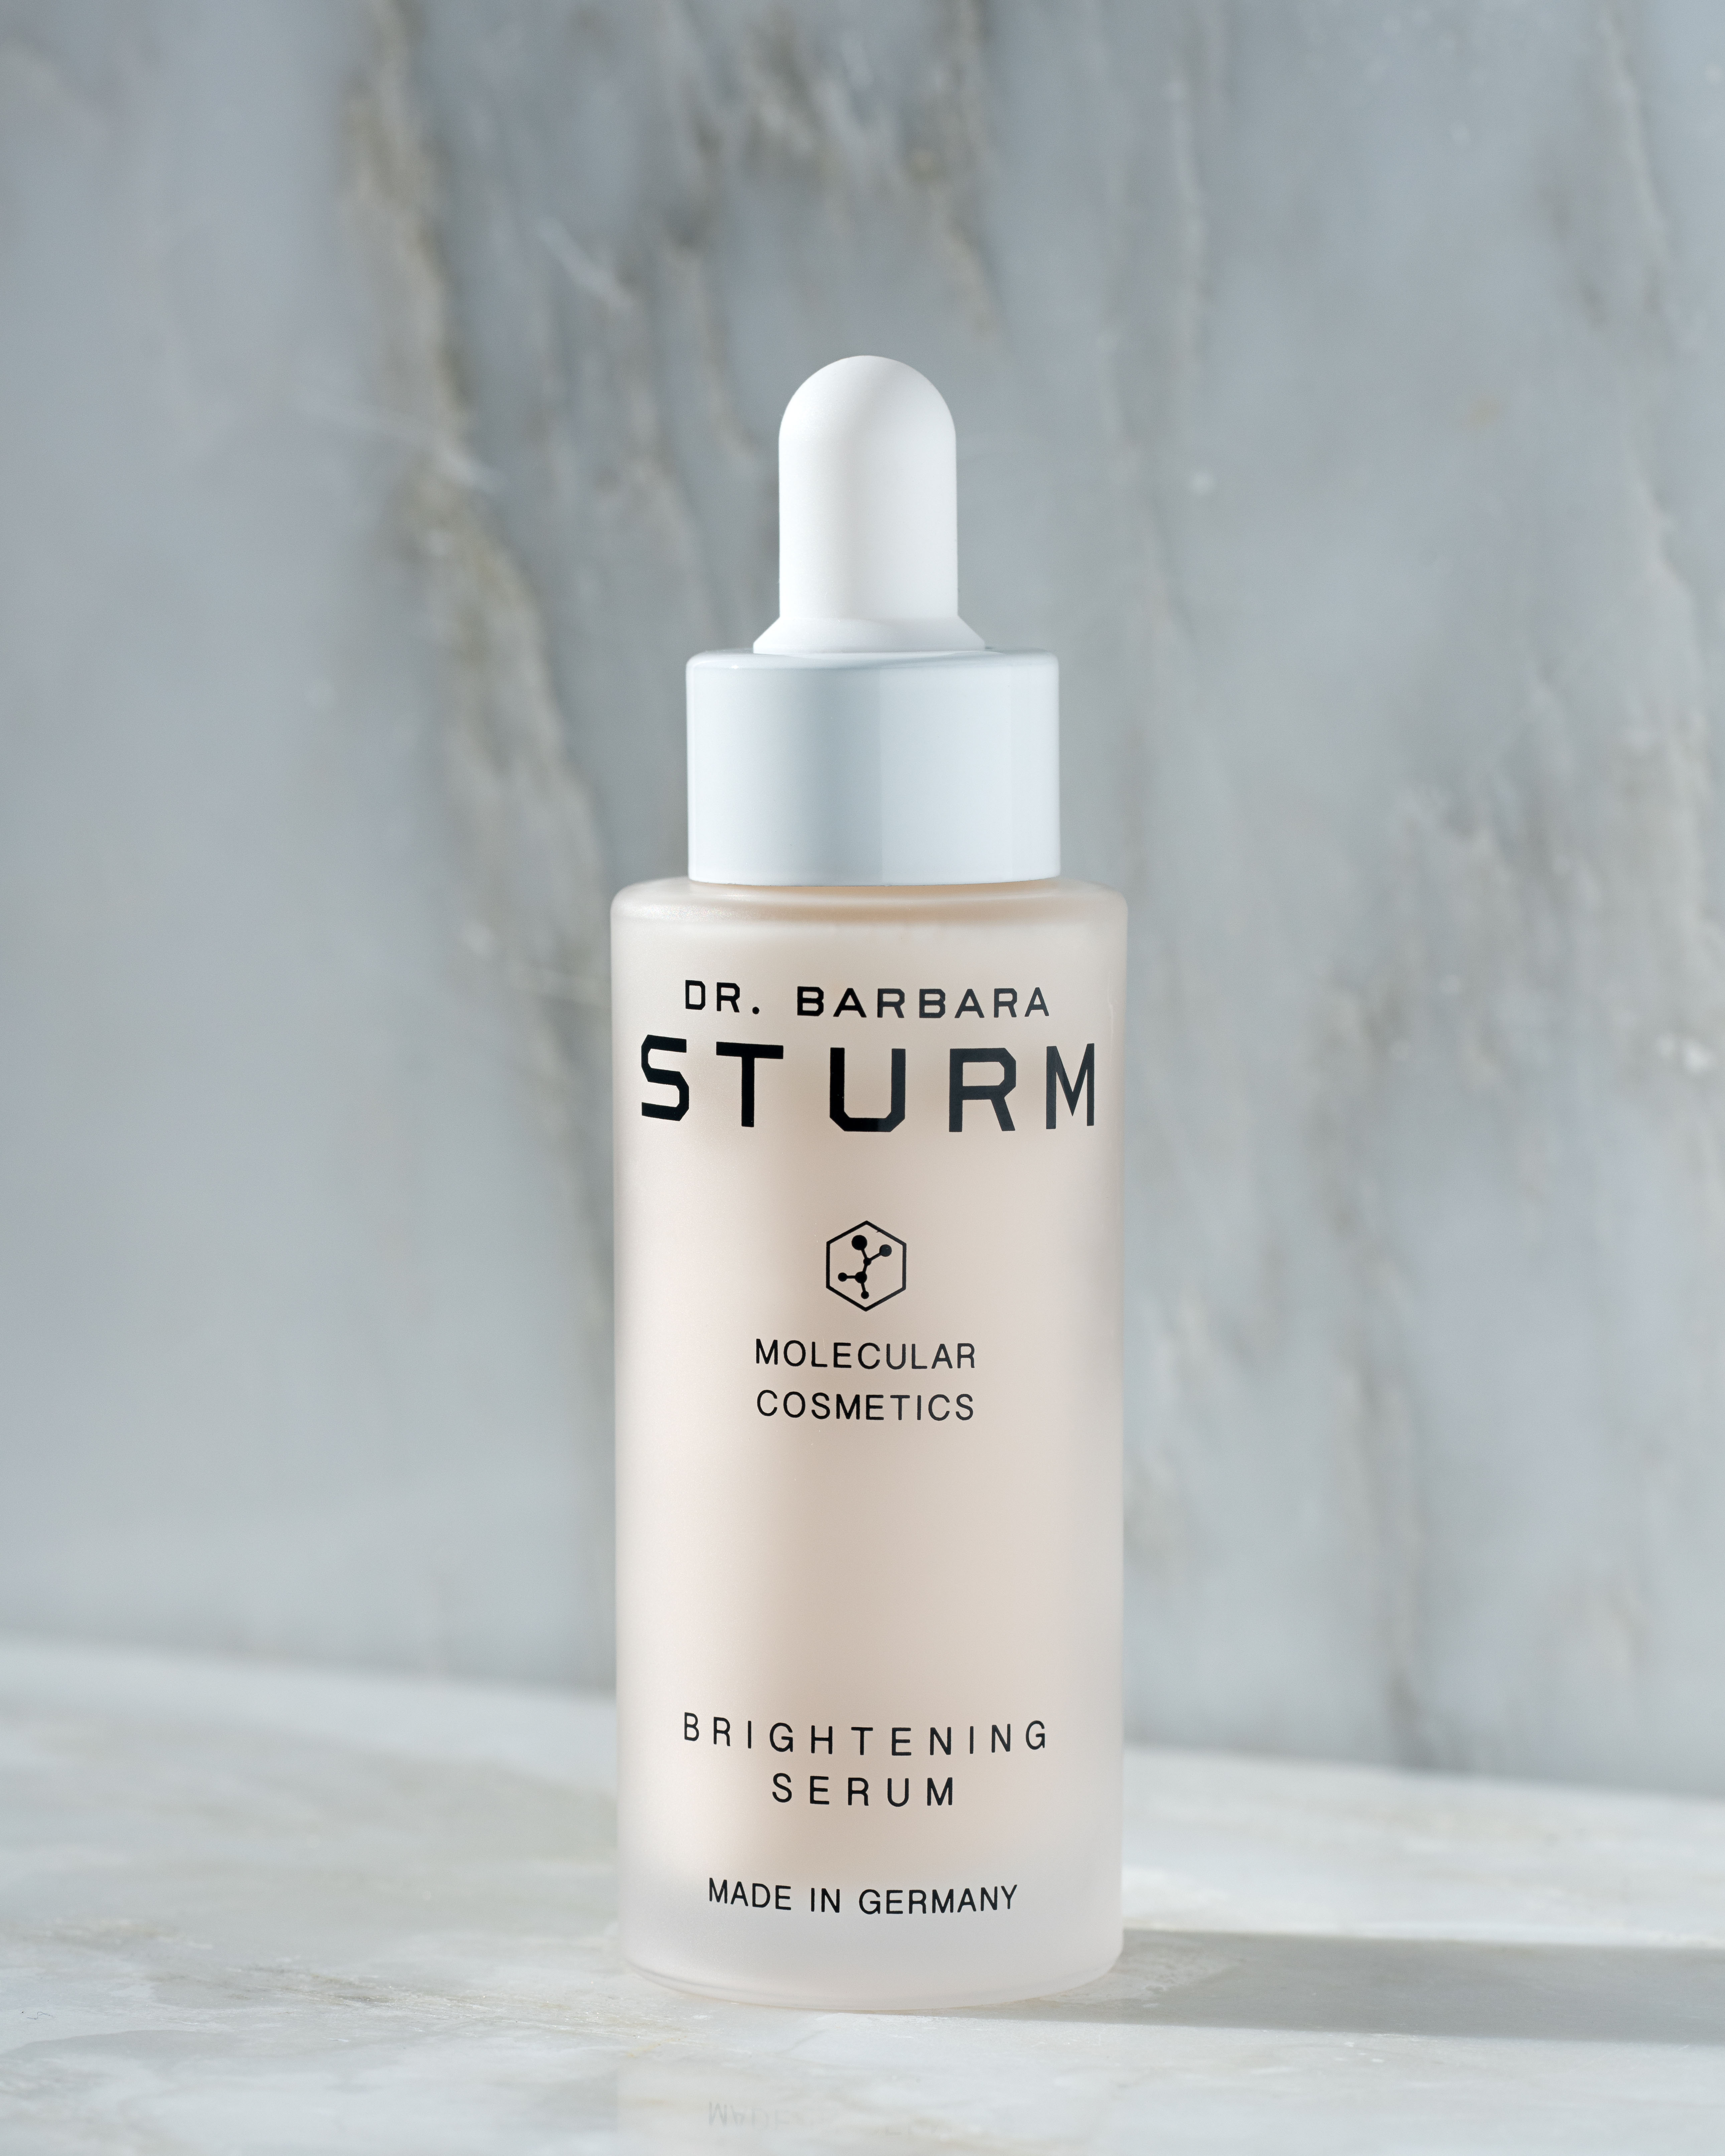 Brightening Serum bottle